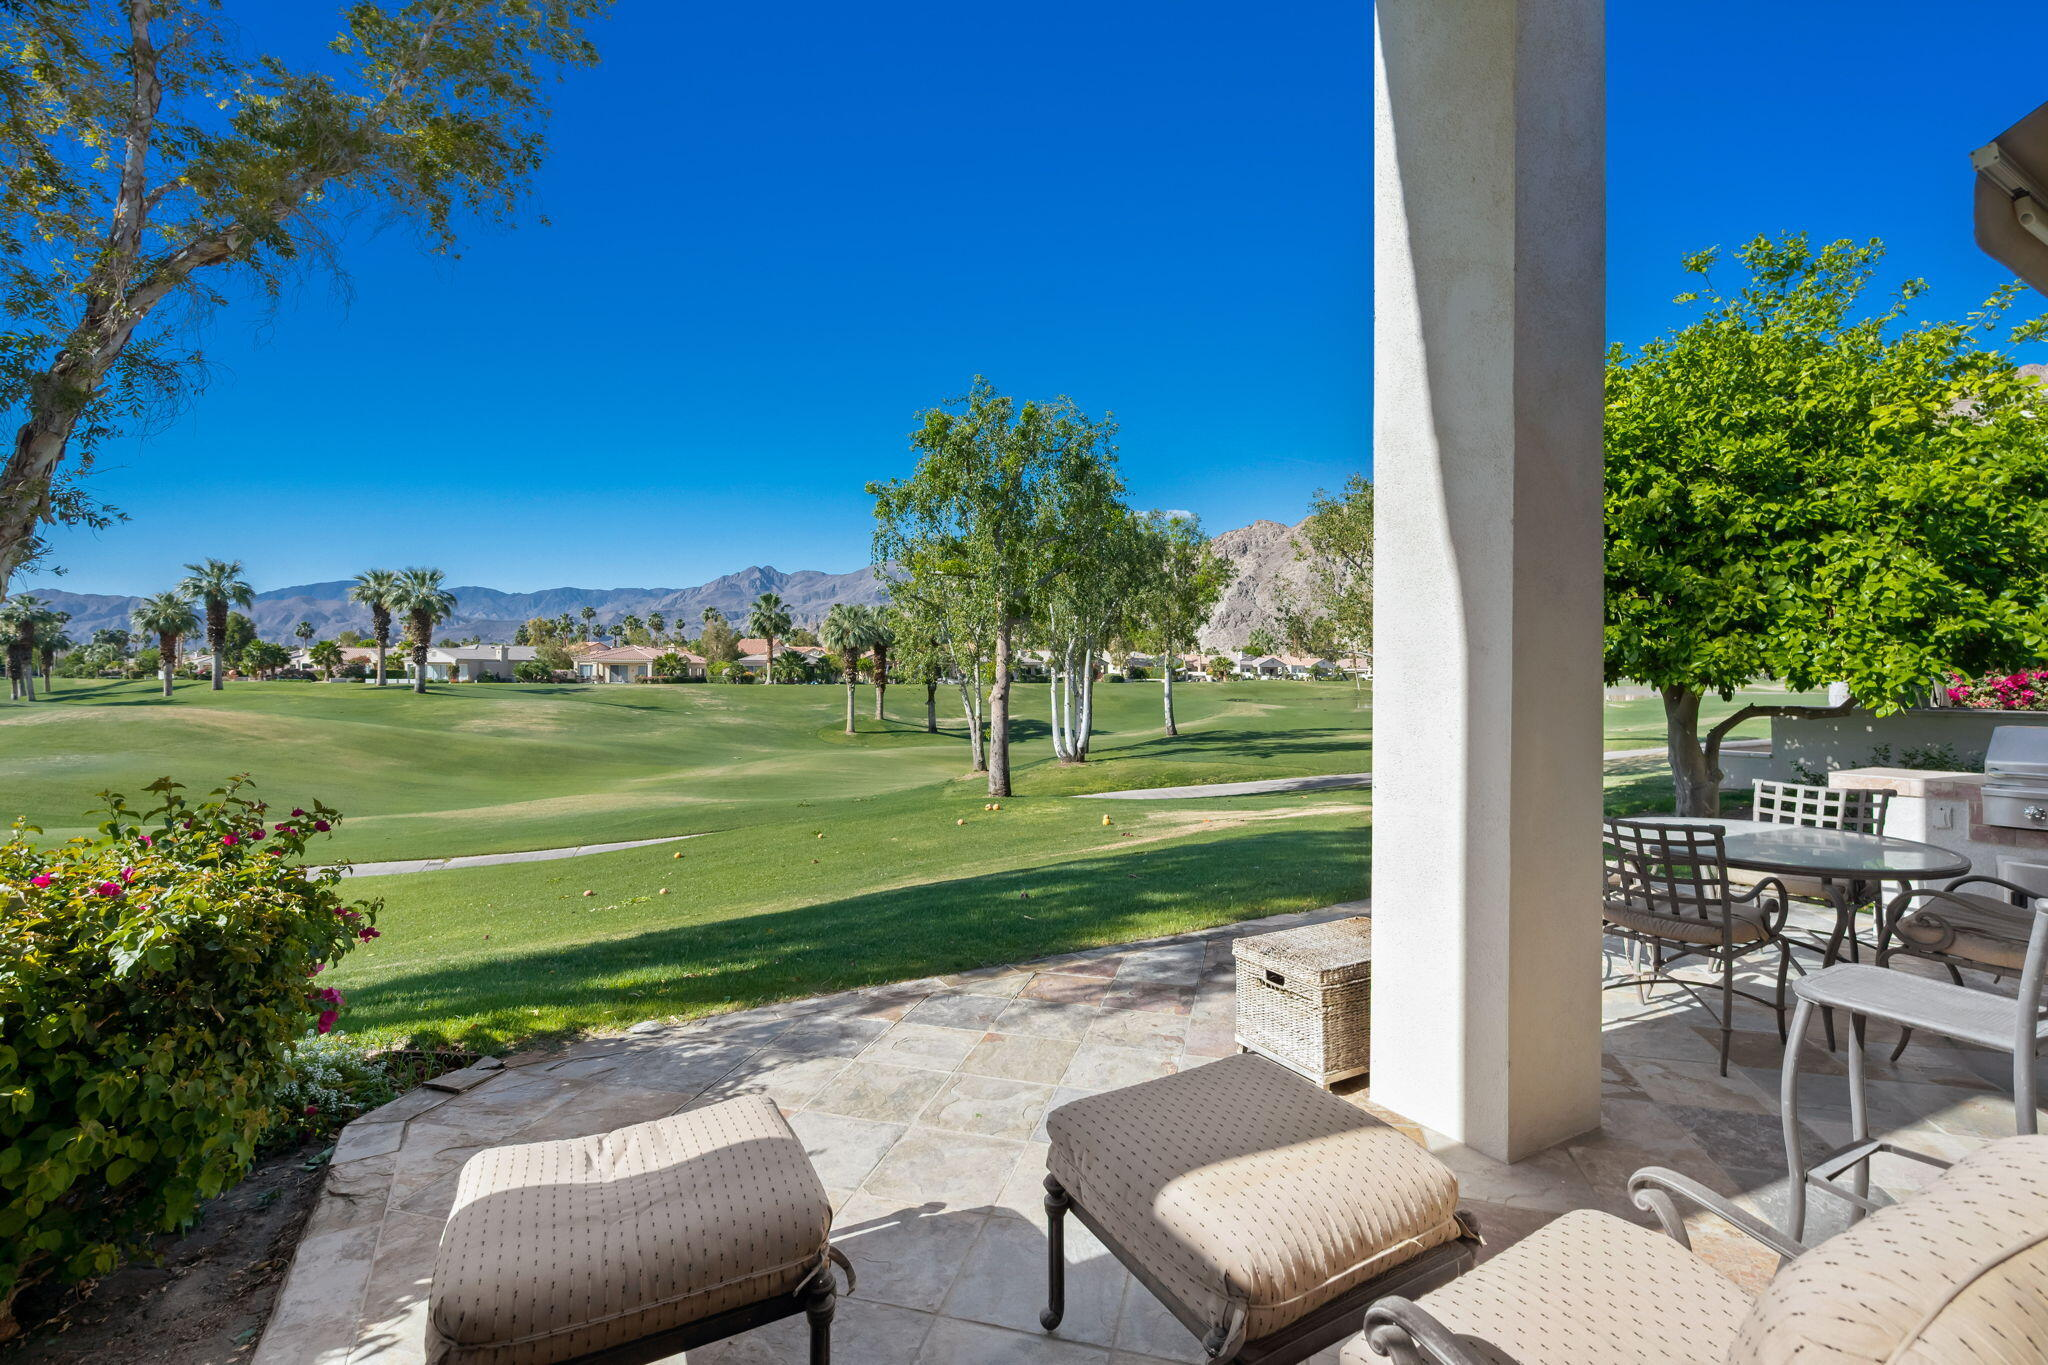 This one of a kind AMAZING Champion 3 offers  A++ southwest, lake and panoramic mountain views, which are night lit for the Ultimate PGA WEST experience! Located on the Signature 4th Hole of the world-famous Arnold Palmer Private Course at PGA WEST this condo offers 3 bedrooms and 2 1/2 baths. There is also a separate bonus OFFICE/BEDROOM with double trundle bed added in the back courtyard with it's own A/C and sink. There are many top notch features in this light and bright unit. High ceilings, recessed lighting, Hunter Douglas Plantation shutters, crown molding, stylish ceiling fans, tile flooring in living areas, stone countertops, and remodeled bathrooms, including a large tiled walk-in shower in Master. Remodeled kitchen features Stainless Steel appliances, gas cooktop, dual sinks, replaced white cabinetry, and Breakfast Bar. The Living Room in this elegant and quality appointed home is enhanced with a beautiful stacked stone fireplace, built-in cabinetry, and maximum windows to enjoy the stunning views. Additional upgrades include an added powder room, new water heater replaced in 2018, air conditioner and heaters replaced in 2016, and upgraded Stainless Steel BBQ Island. This PGA WEST home is a rare find. Sold fully furnished per inventory.